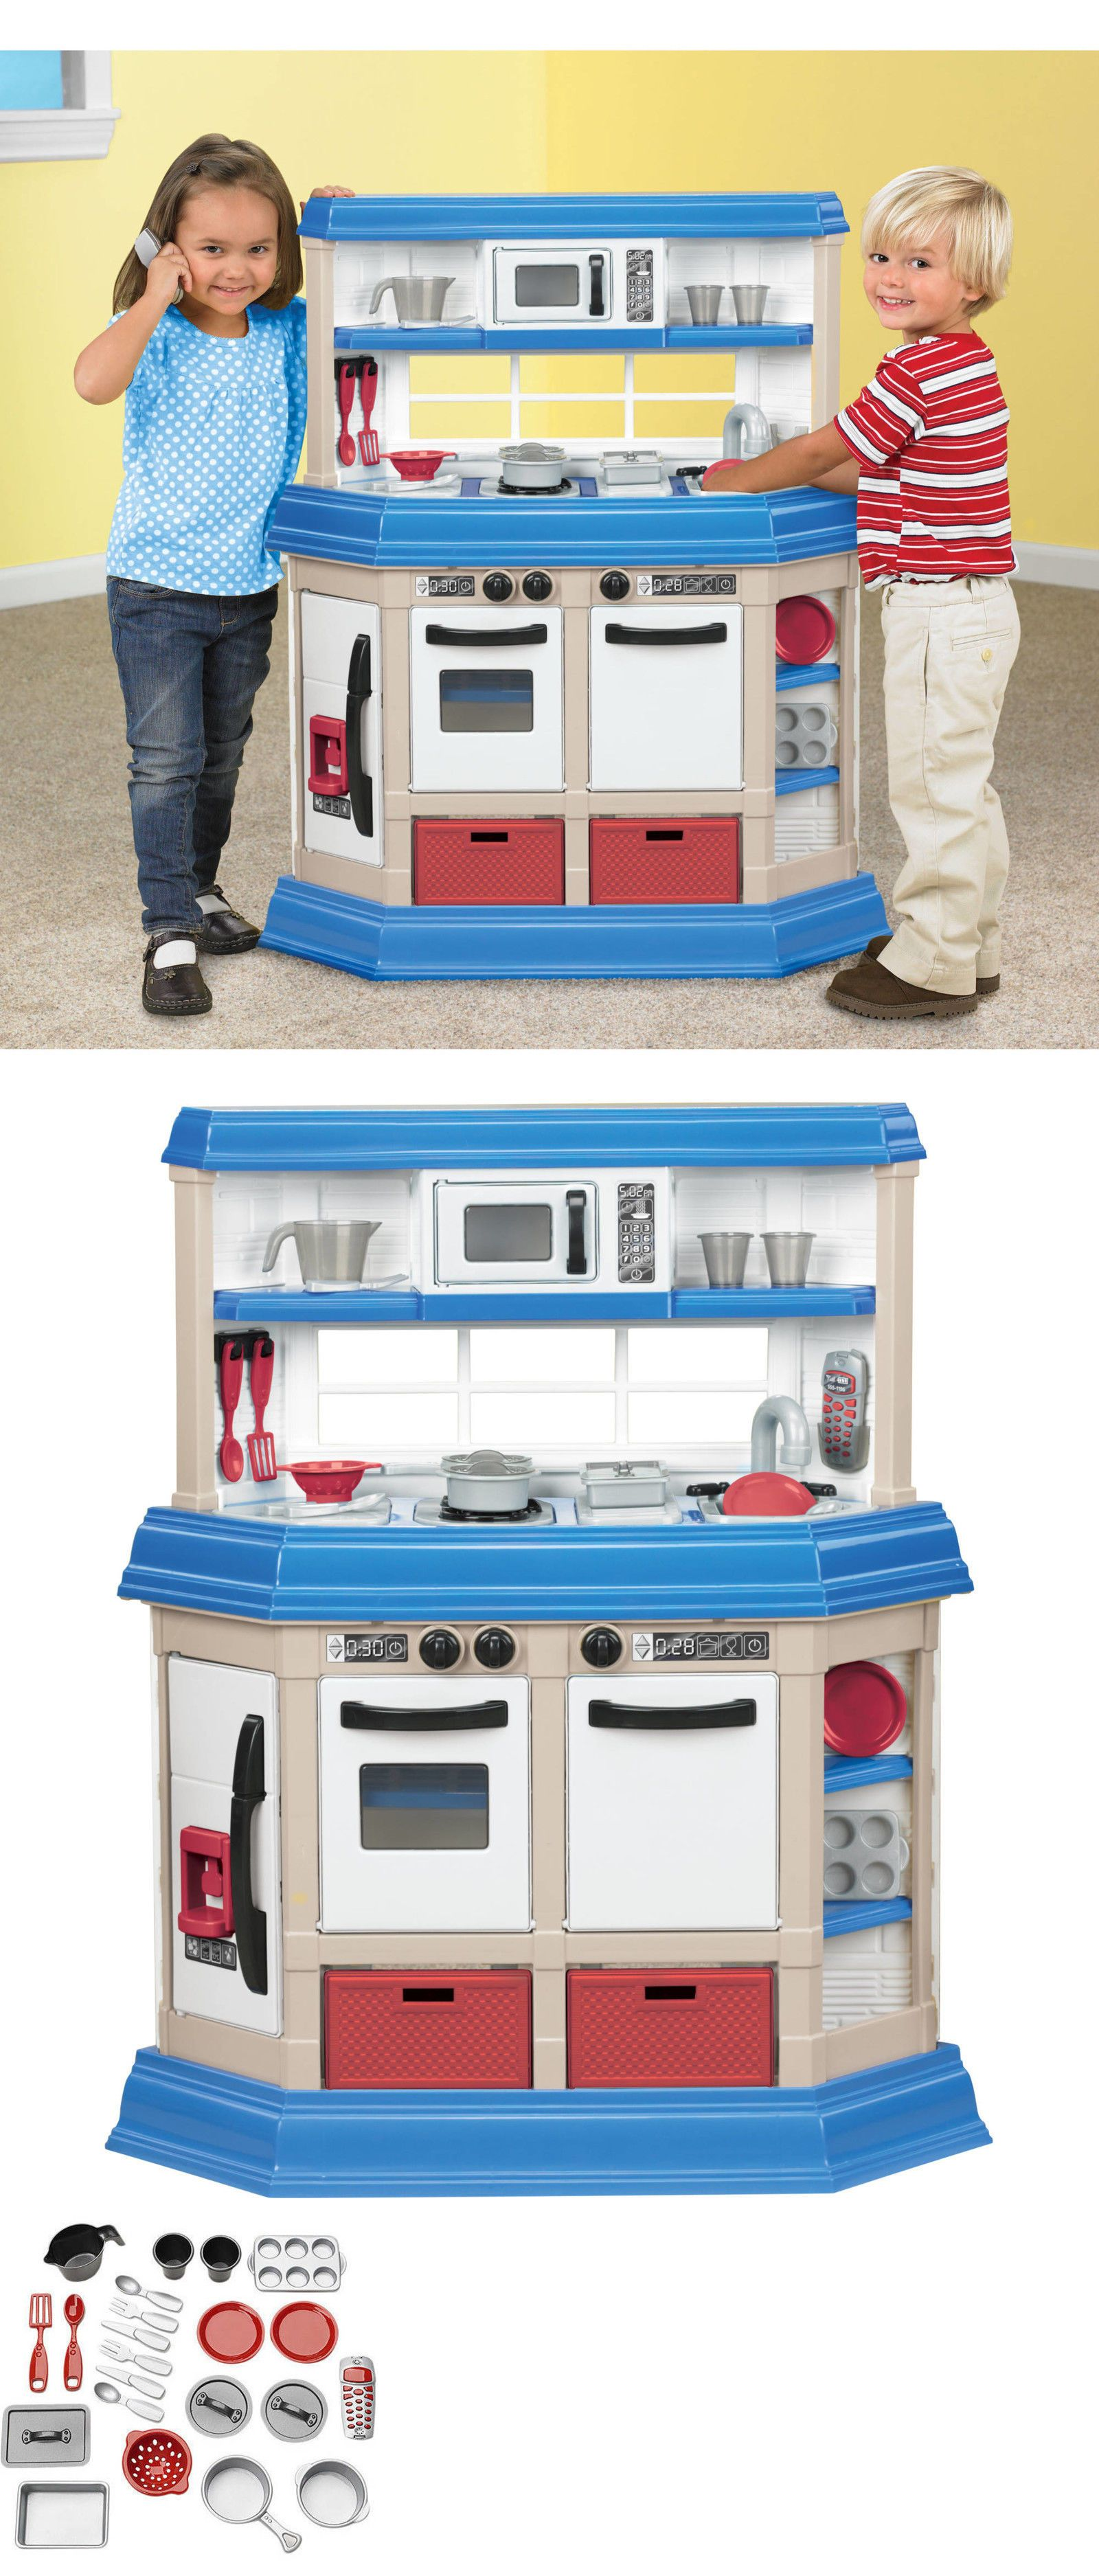 Toys for kids kitchen set  Kitchens  Kids Pretend Play Kitchen Playset Plastic Cooking